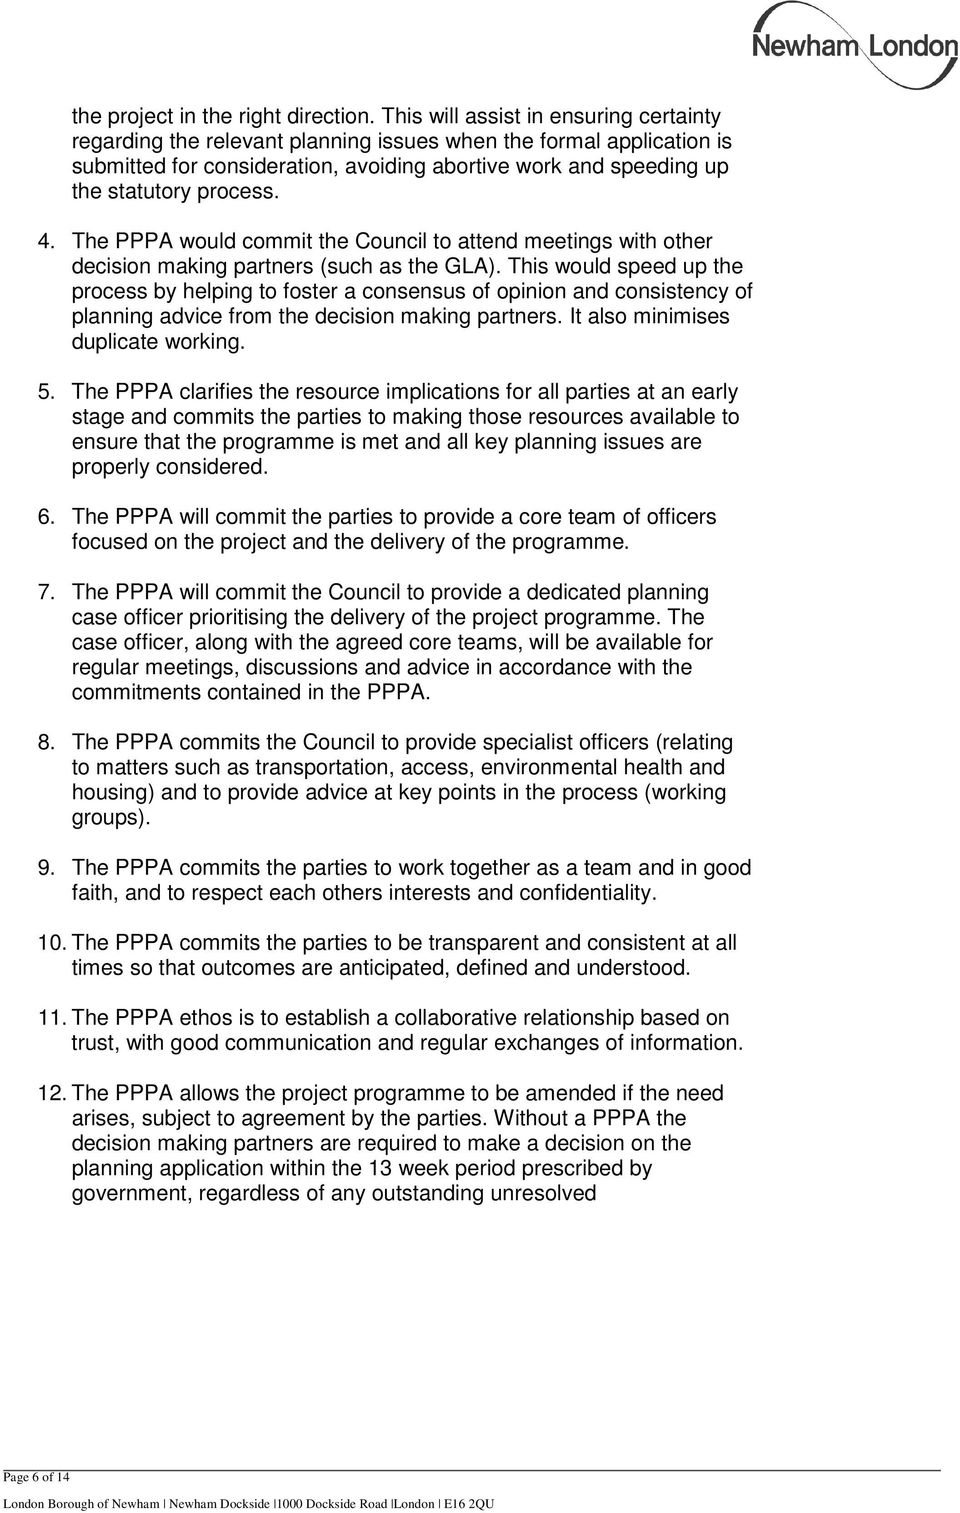 4. The PPPA would commit the Council to attend meetings with other decision making partners (such as the GLA).